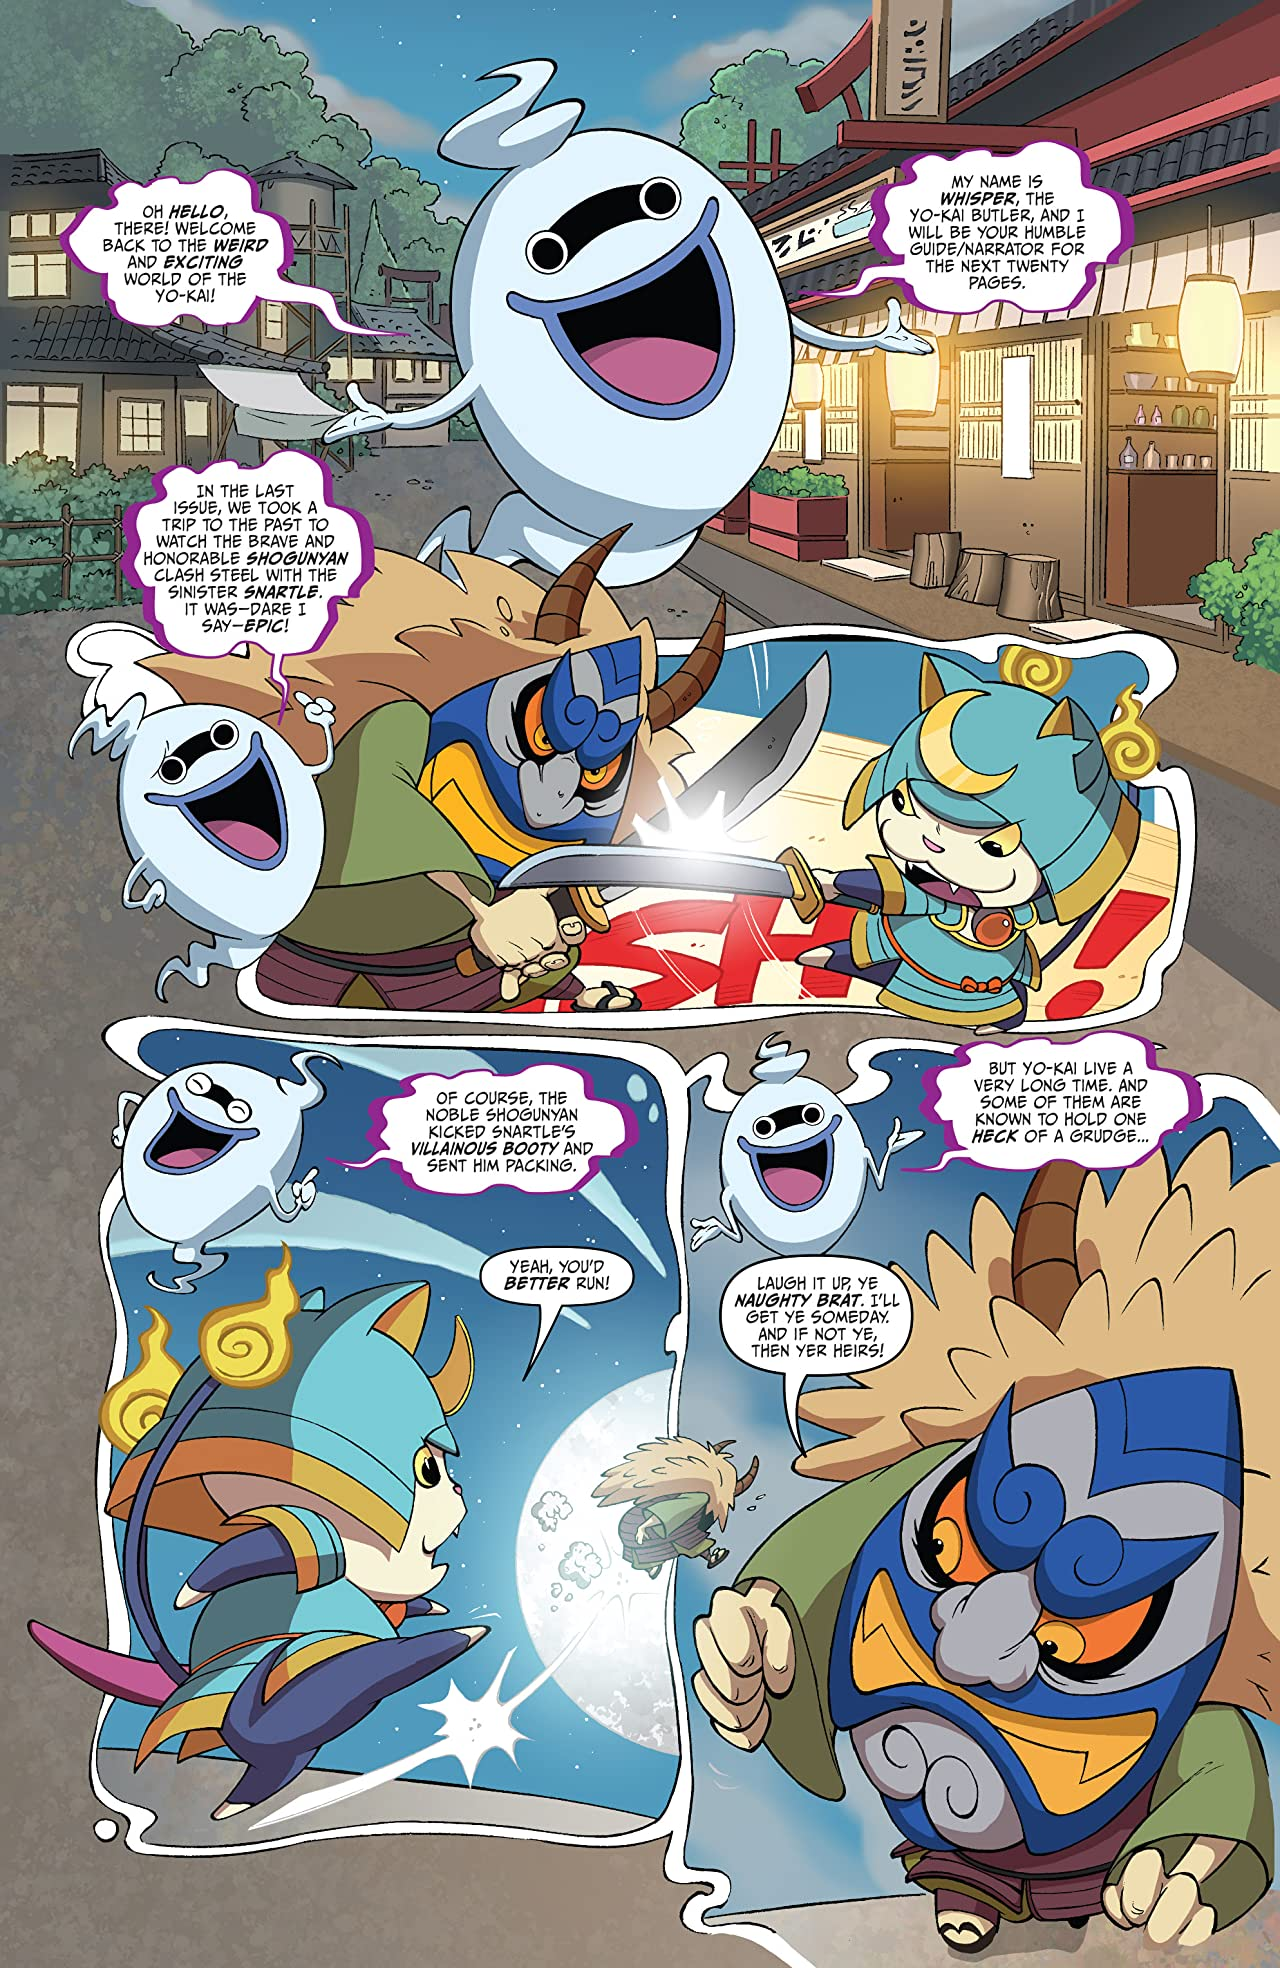 YOKAI WATCH GUIDE PDF